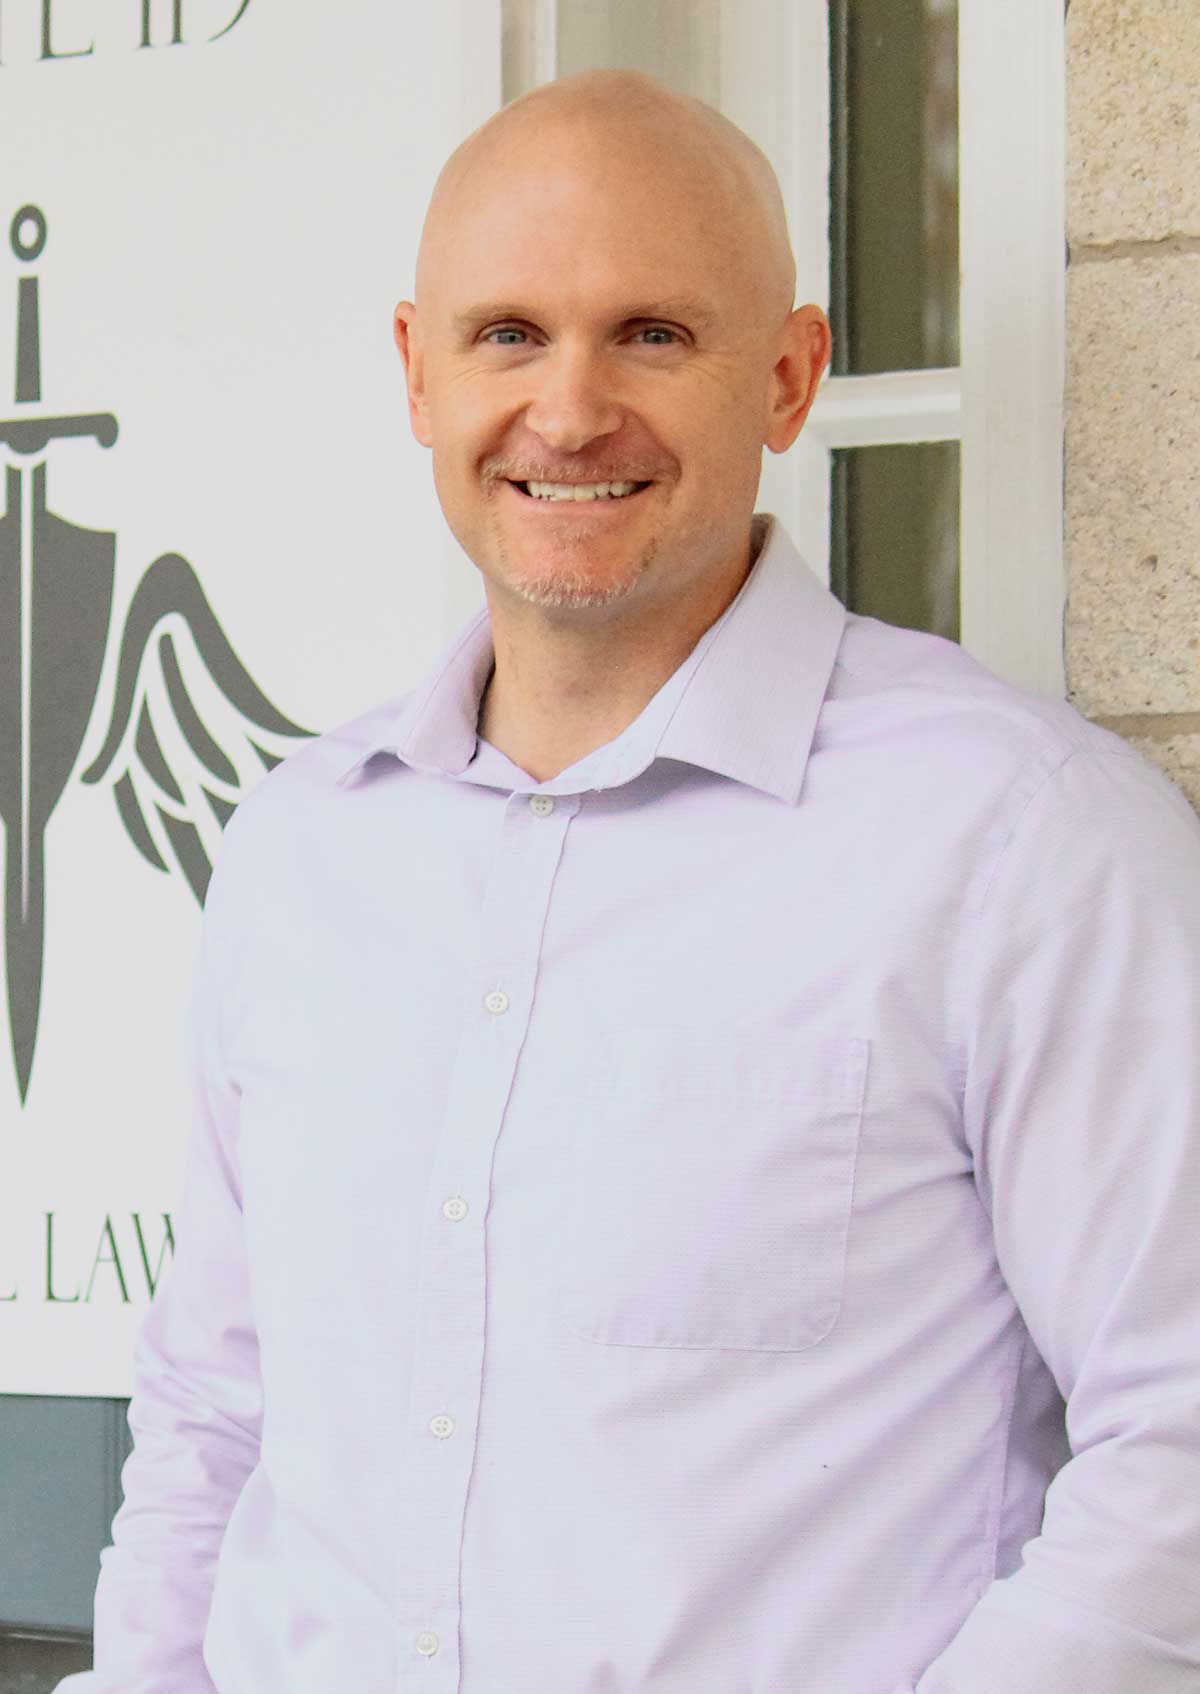 Christian Blank in a white dress shirt standing in front of the Archangel Law Group logo